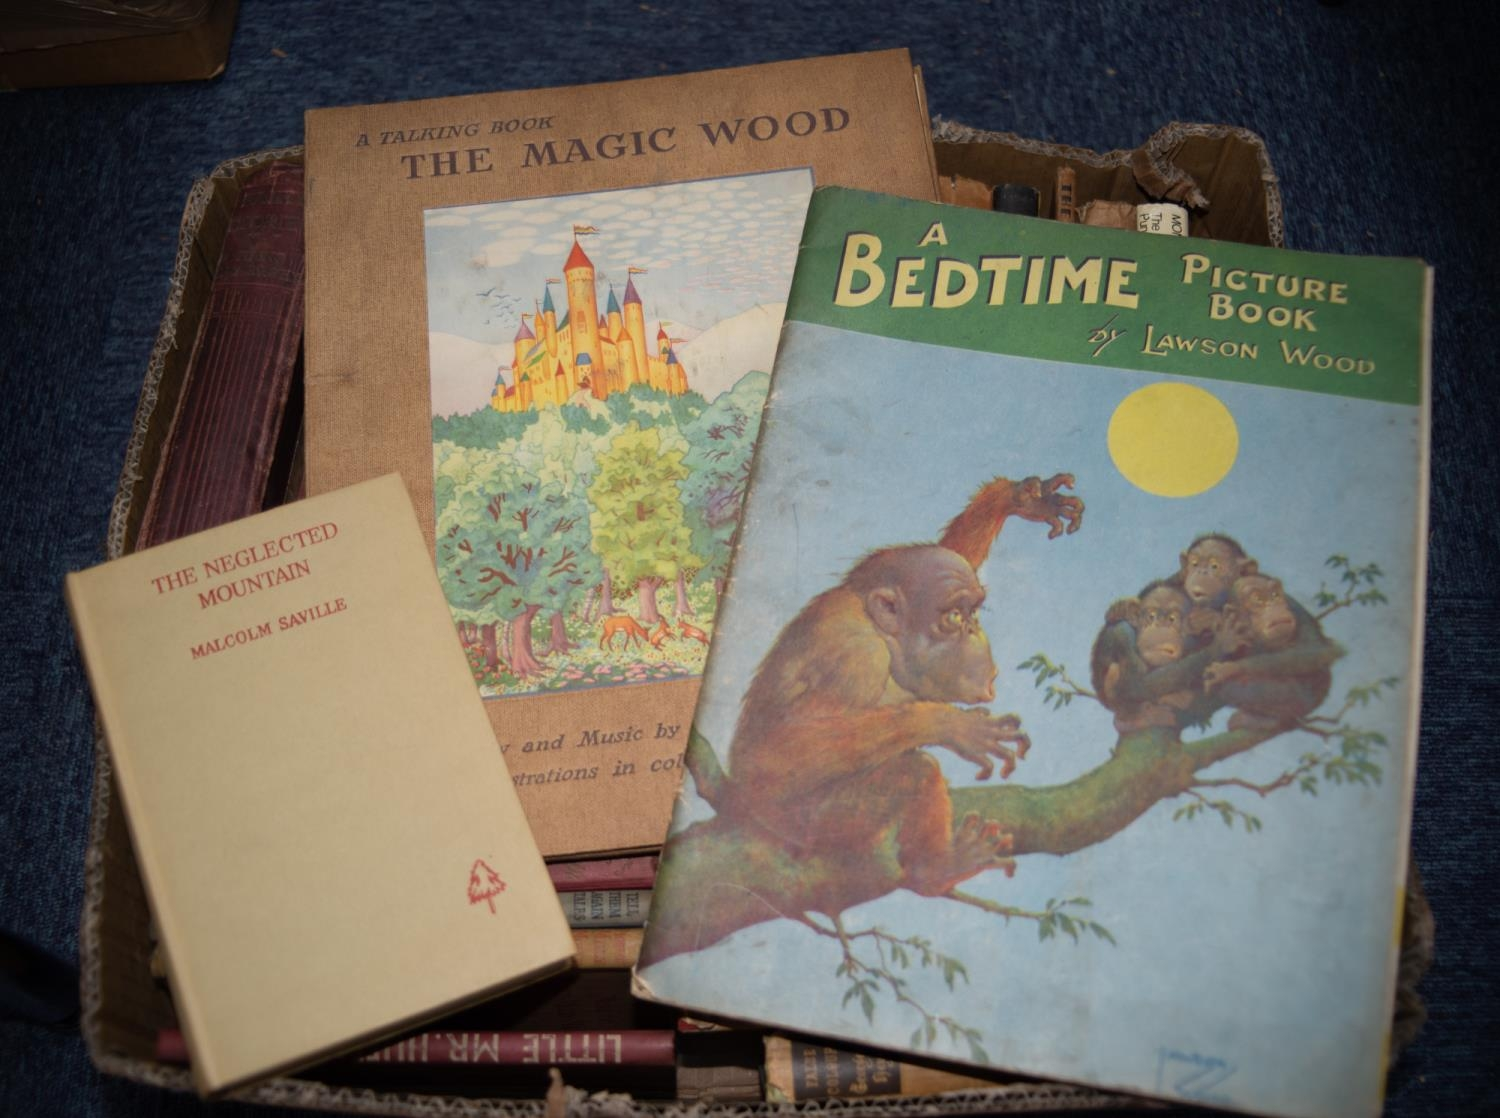 CHILDRENS, FICTION. Phillips, Paul- A Talking Book, The Magic Wood, IPL, production, Horace Marshall - Image 2 of 3